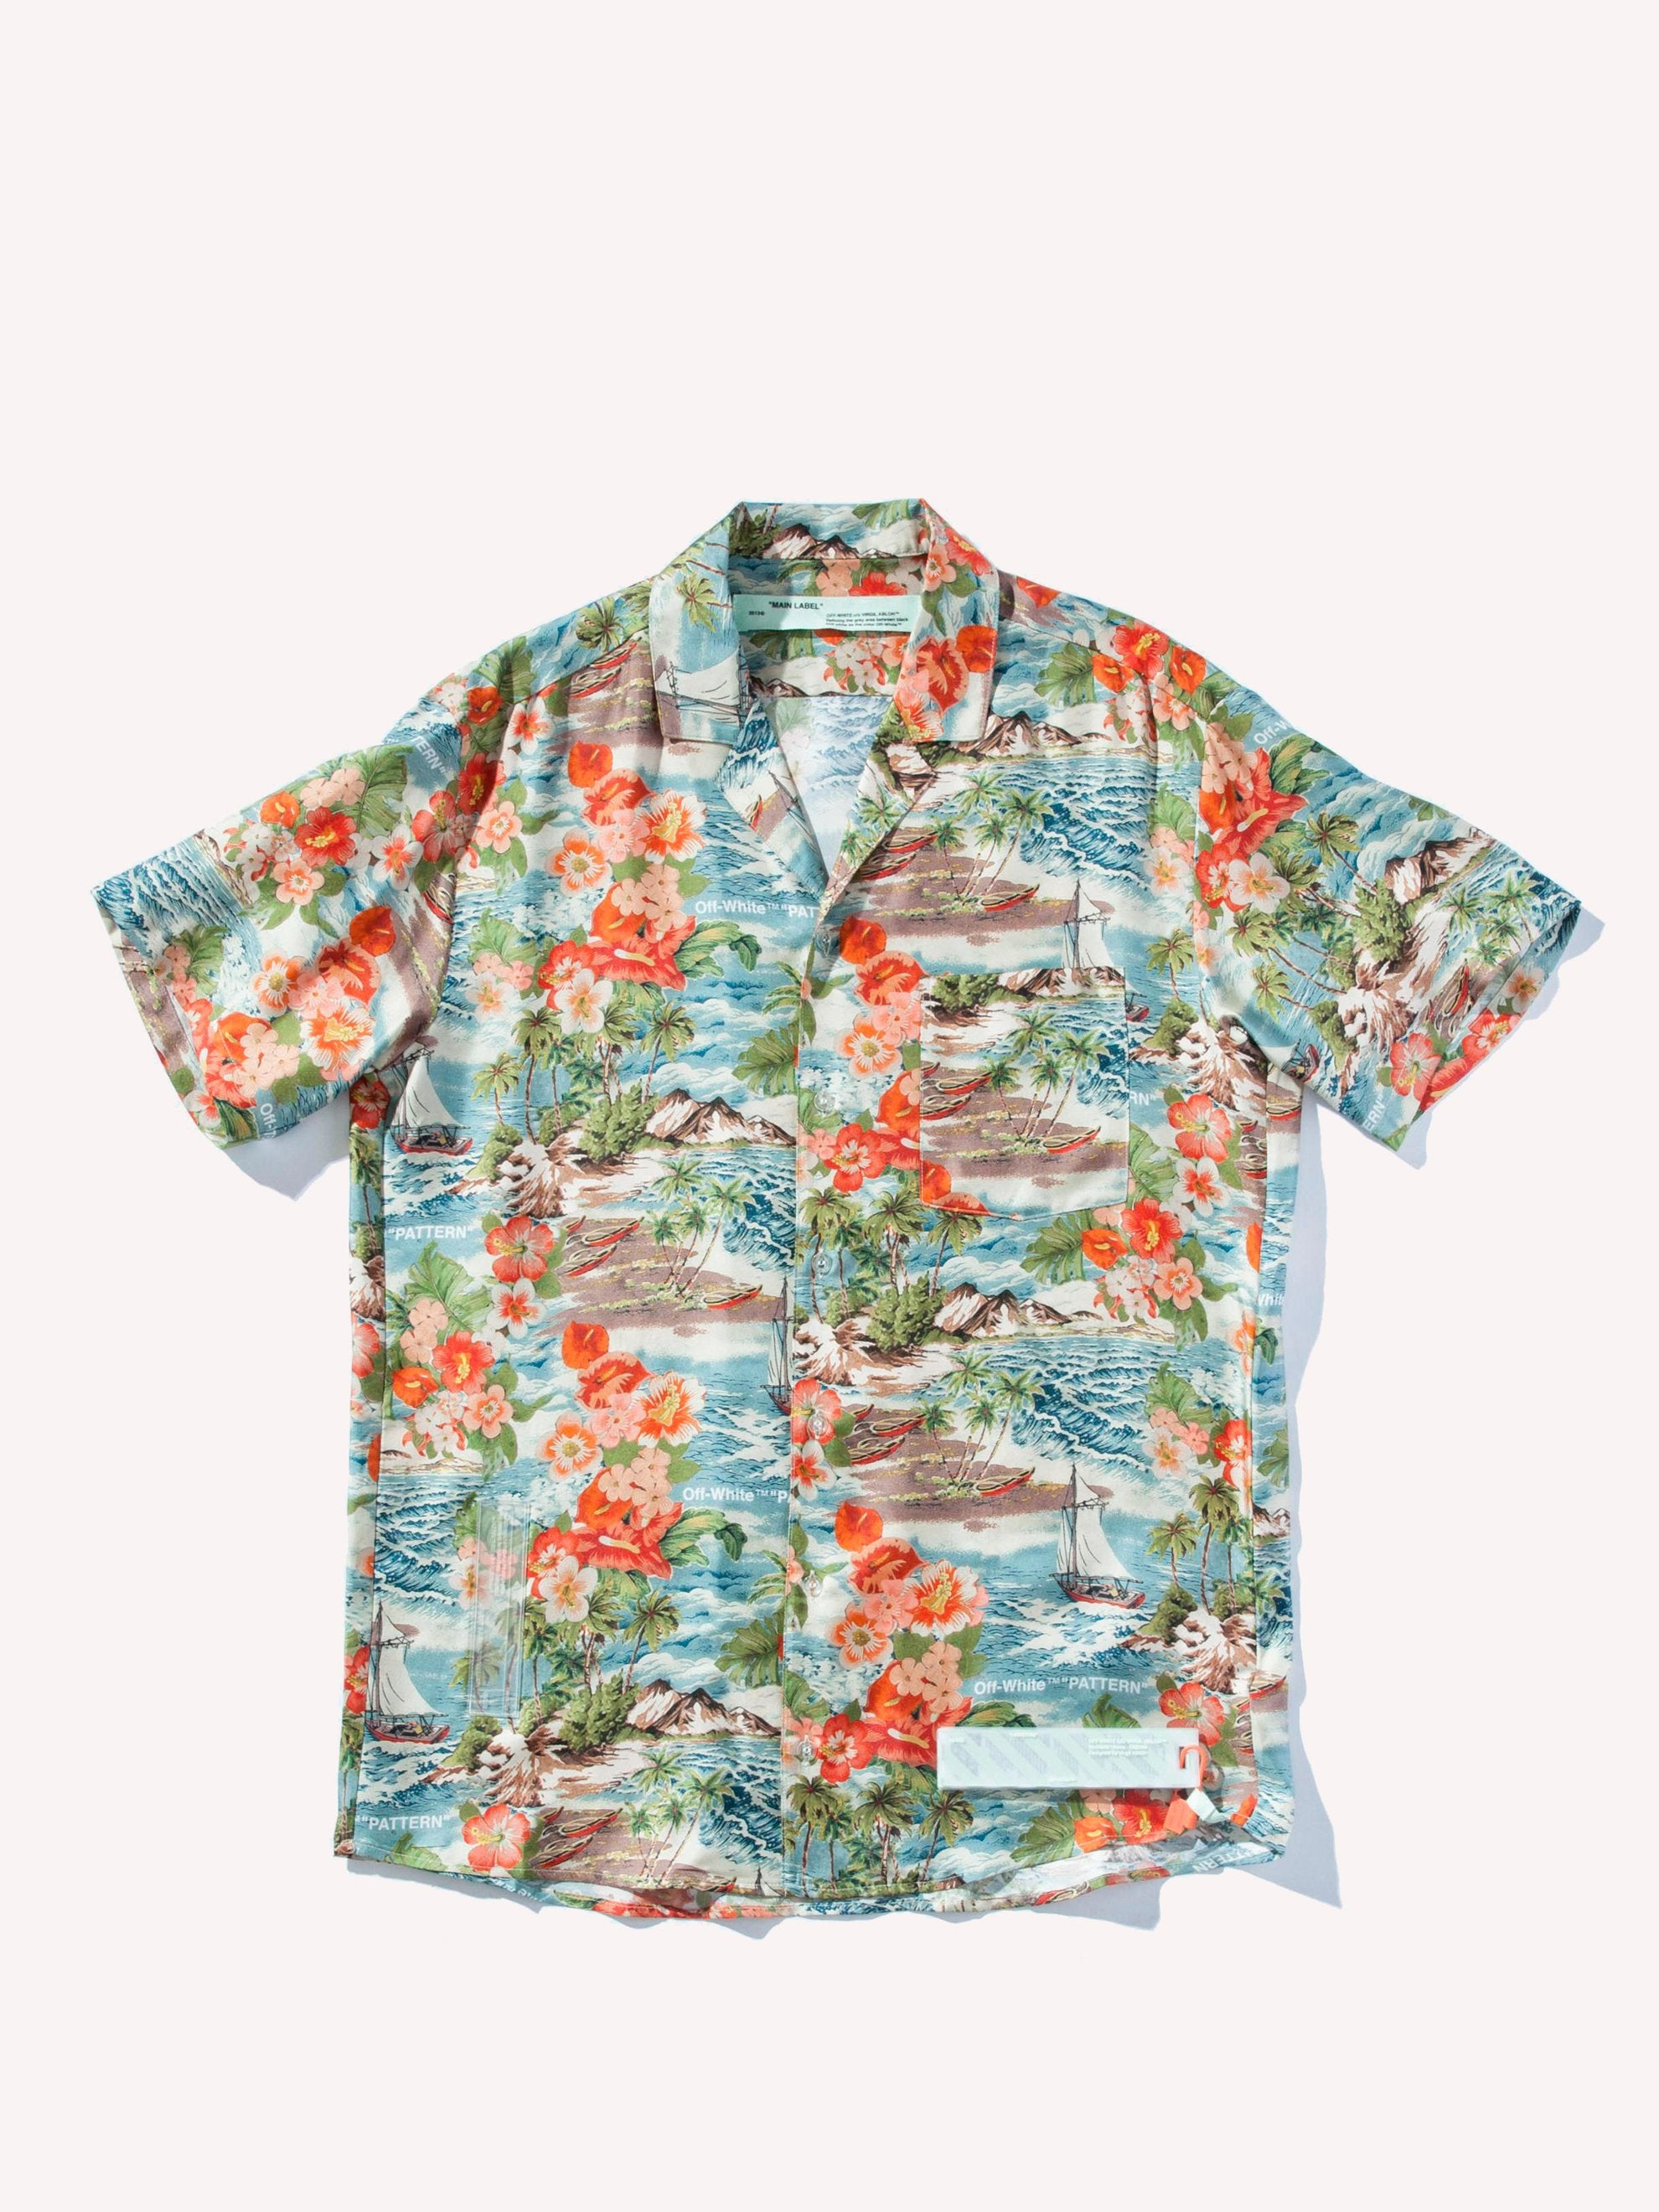 All Over/No Color Multicolor Hawaiian Shirt 1